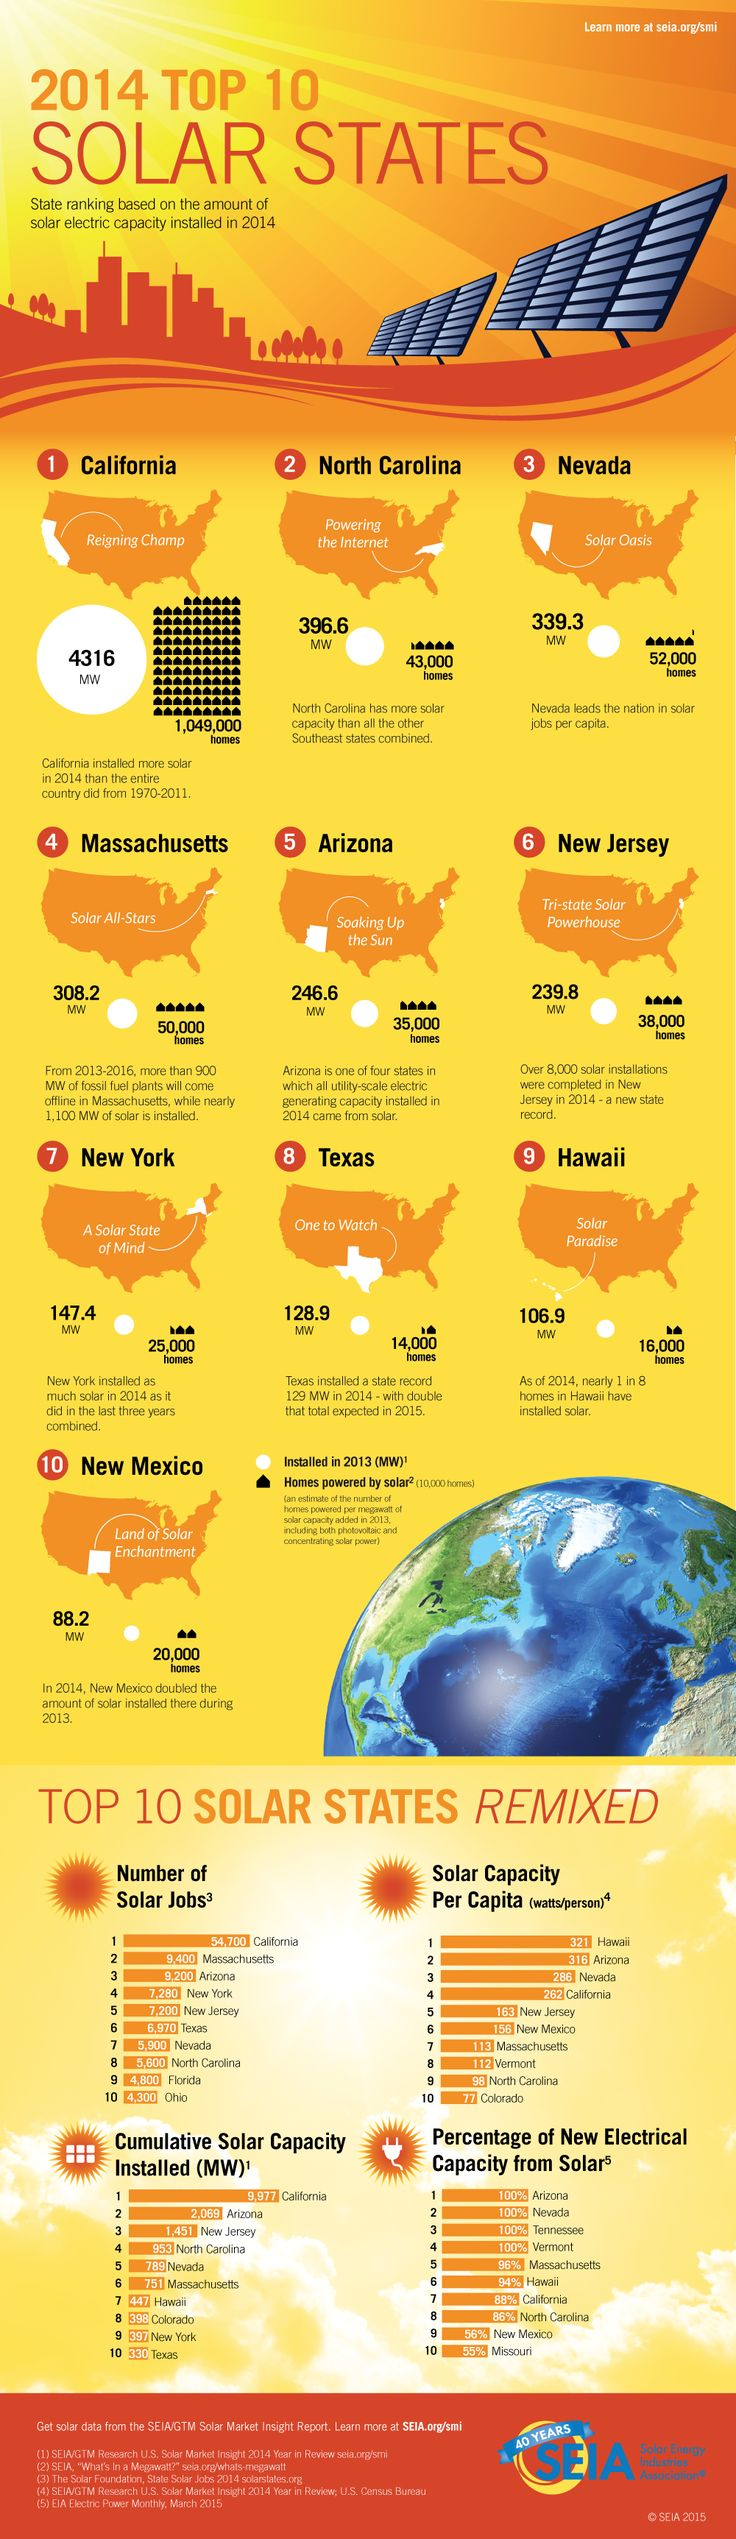 """2014 Top 10 Solar States 